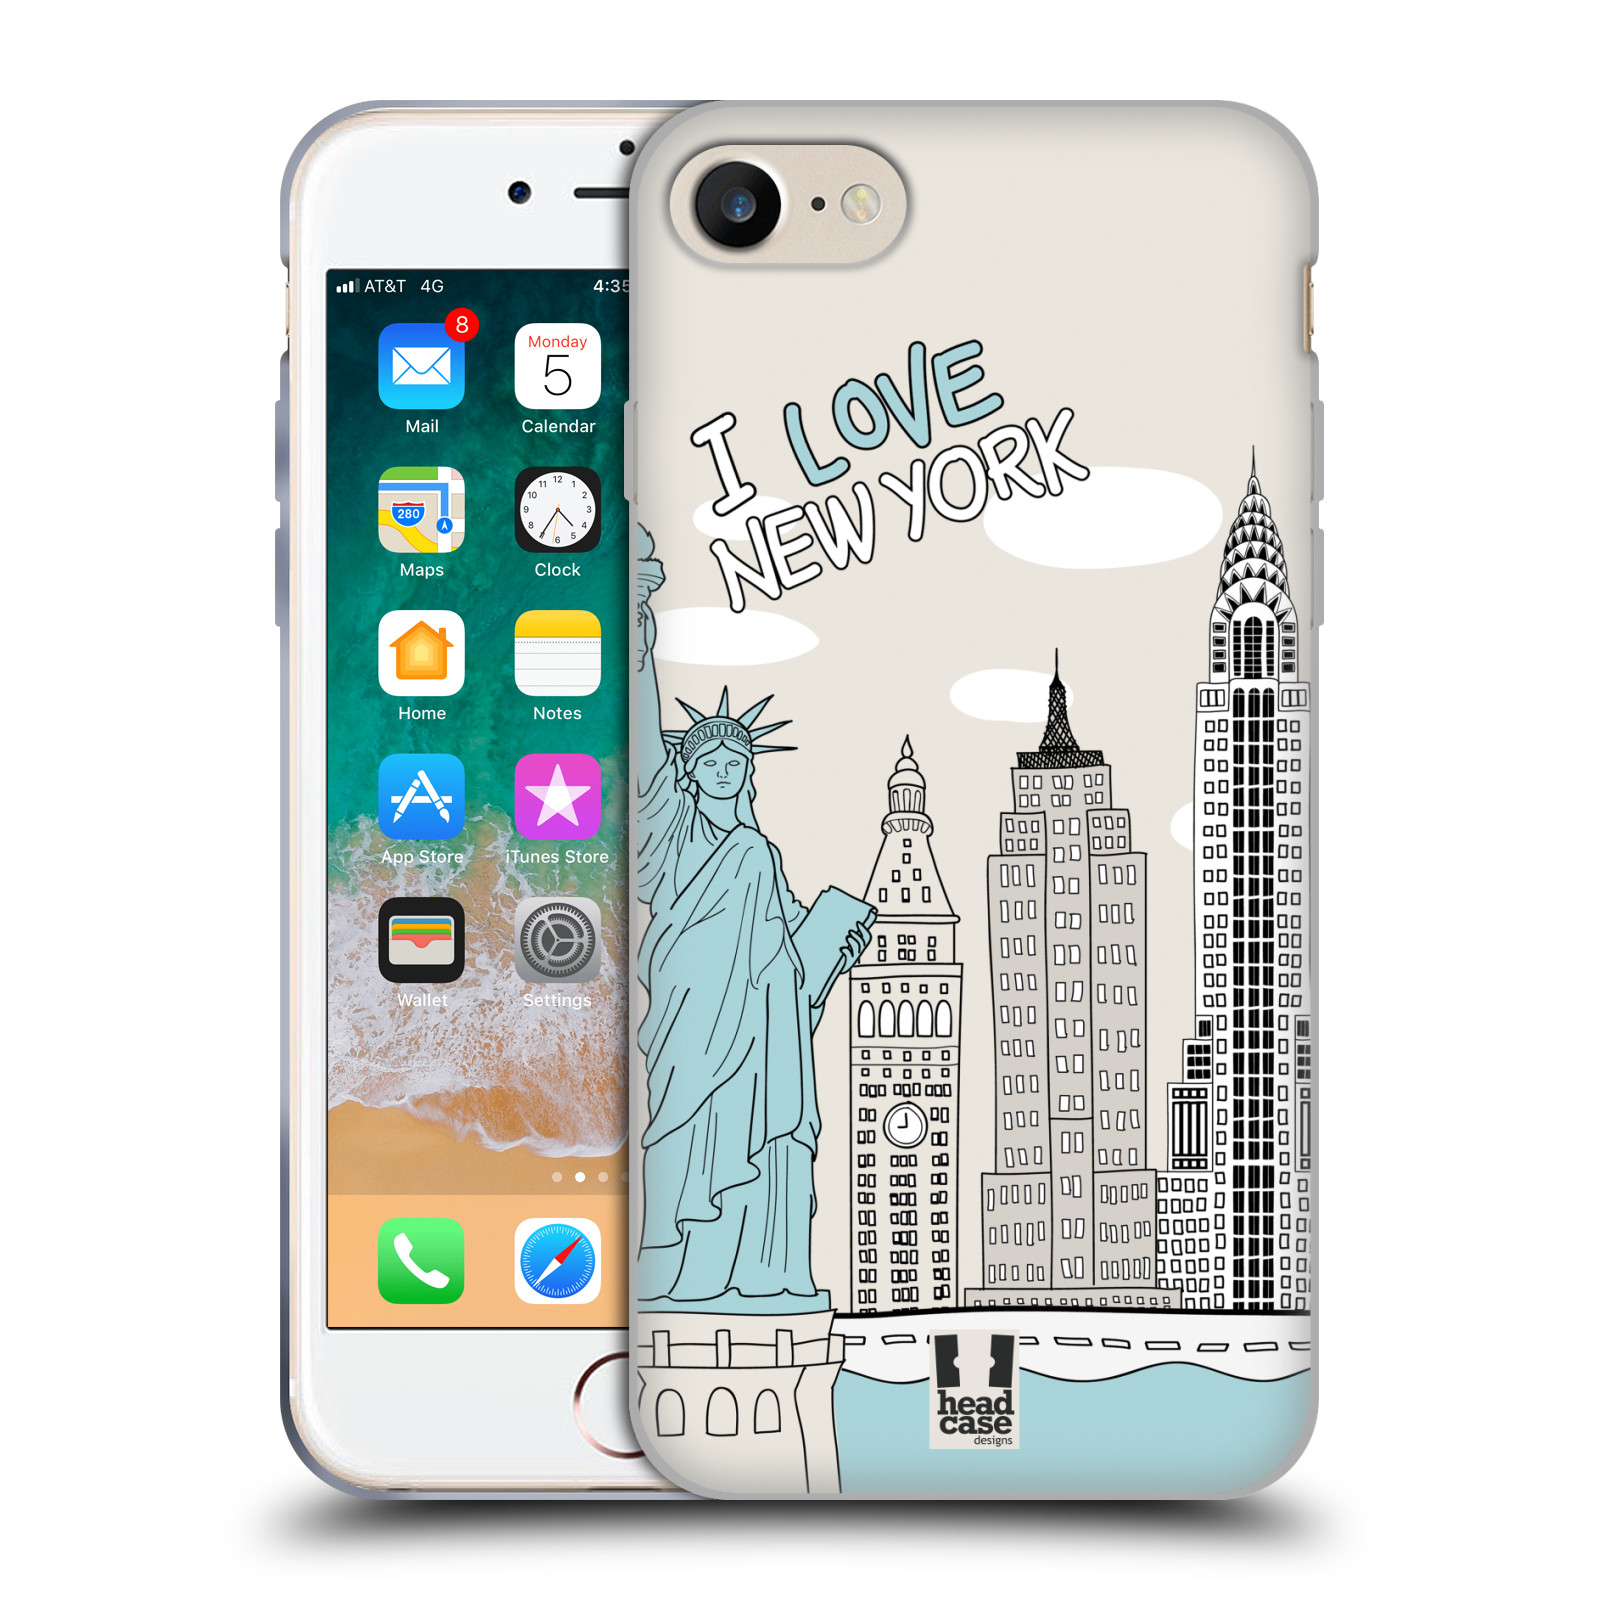 HEAD CASE silikonový obal na mobil Apple Iphone 7 vzor Kreslená městečka MODRÁ, USA, New York, I LOVE NEW YORK